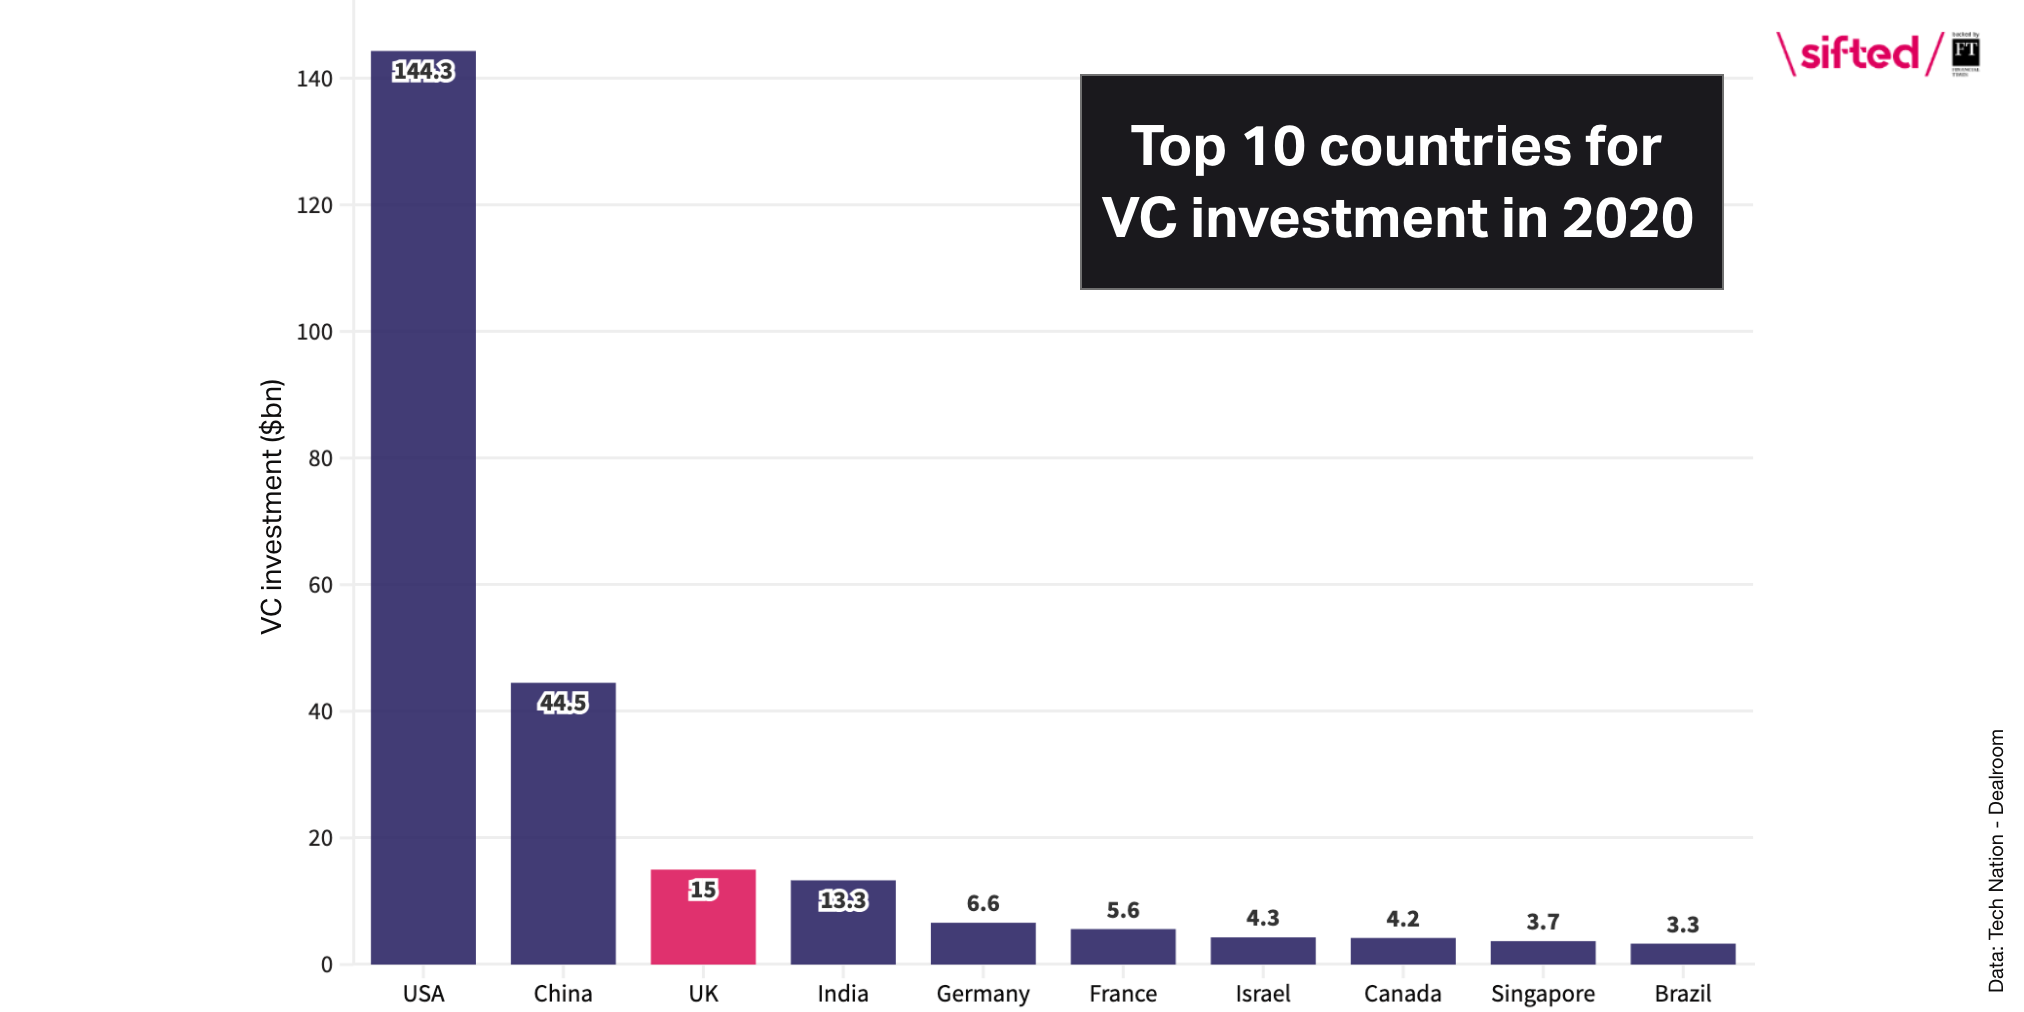 top 10 counries 2020 VC investment